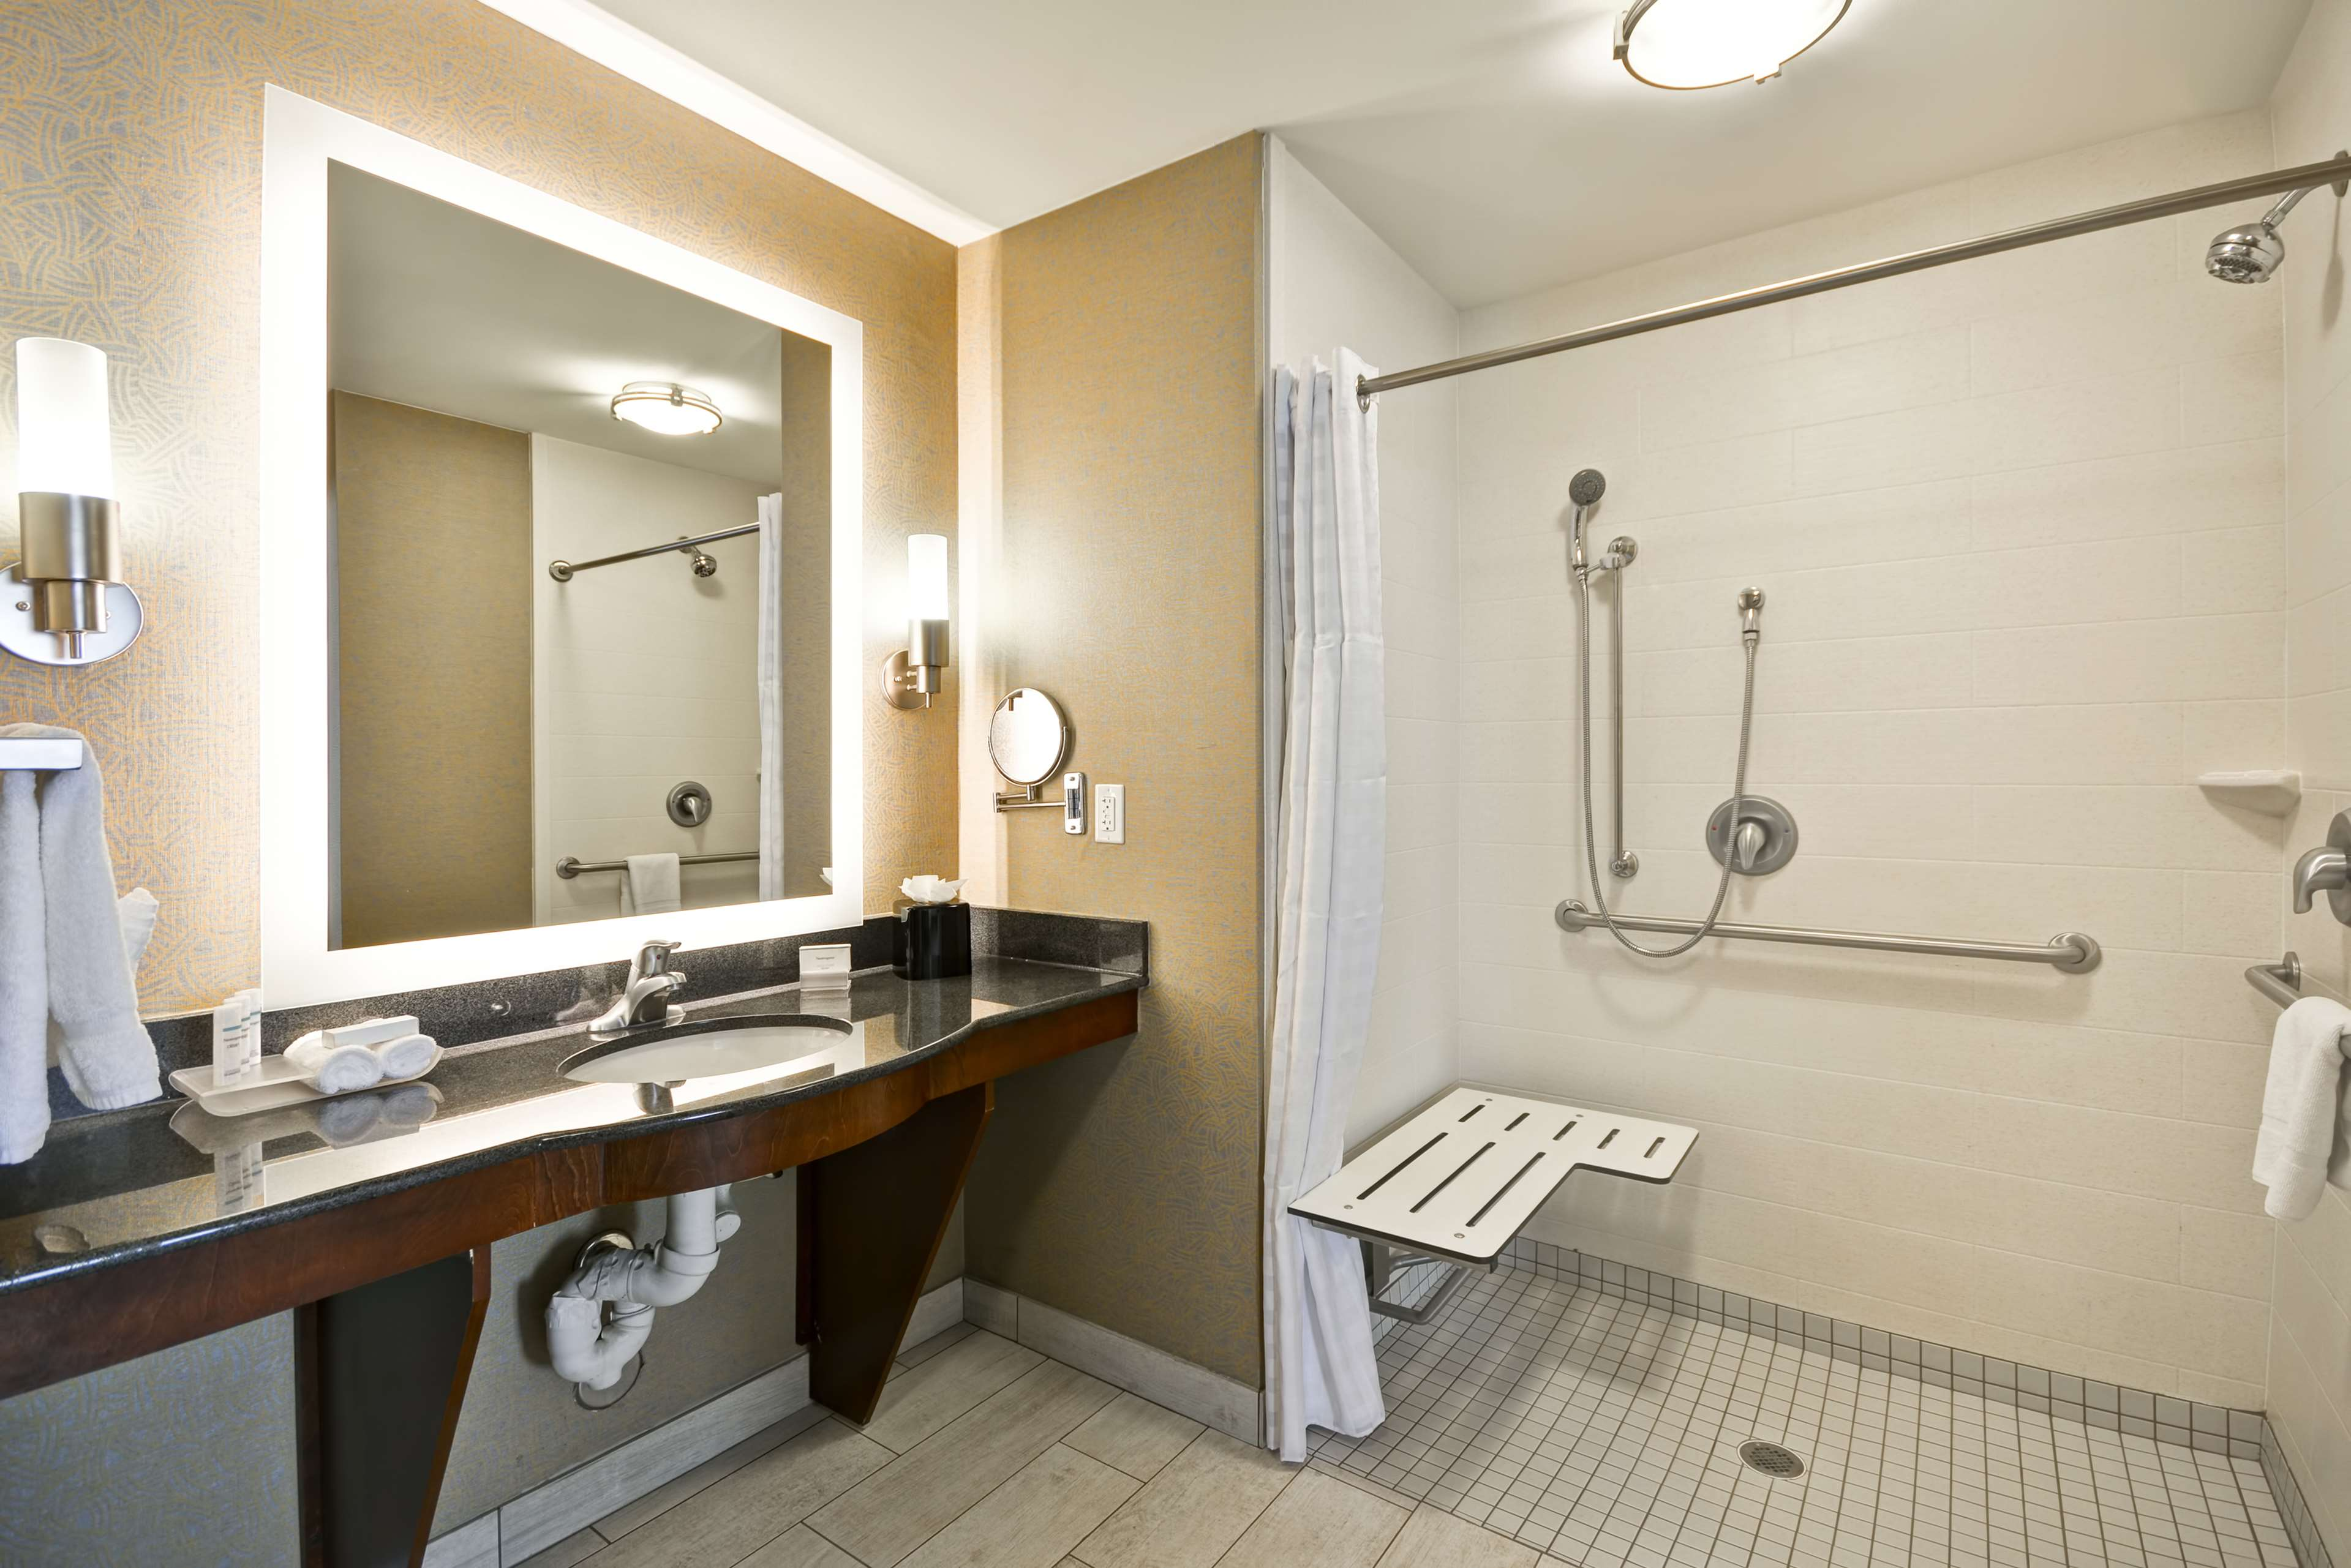 Homewood Suites by Hilton Wilmington/Mayfaire, NC image 30